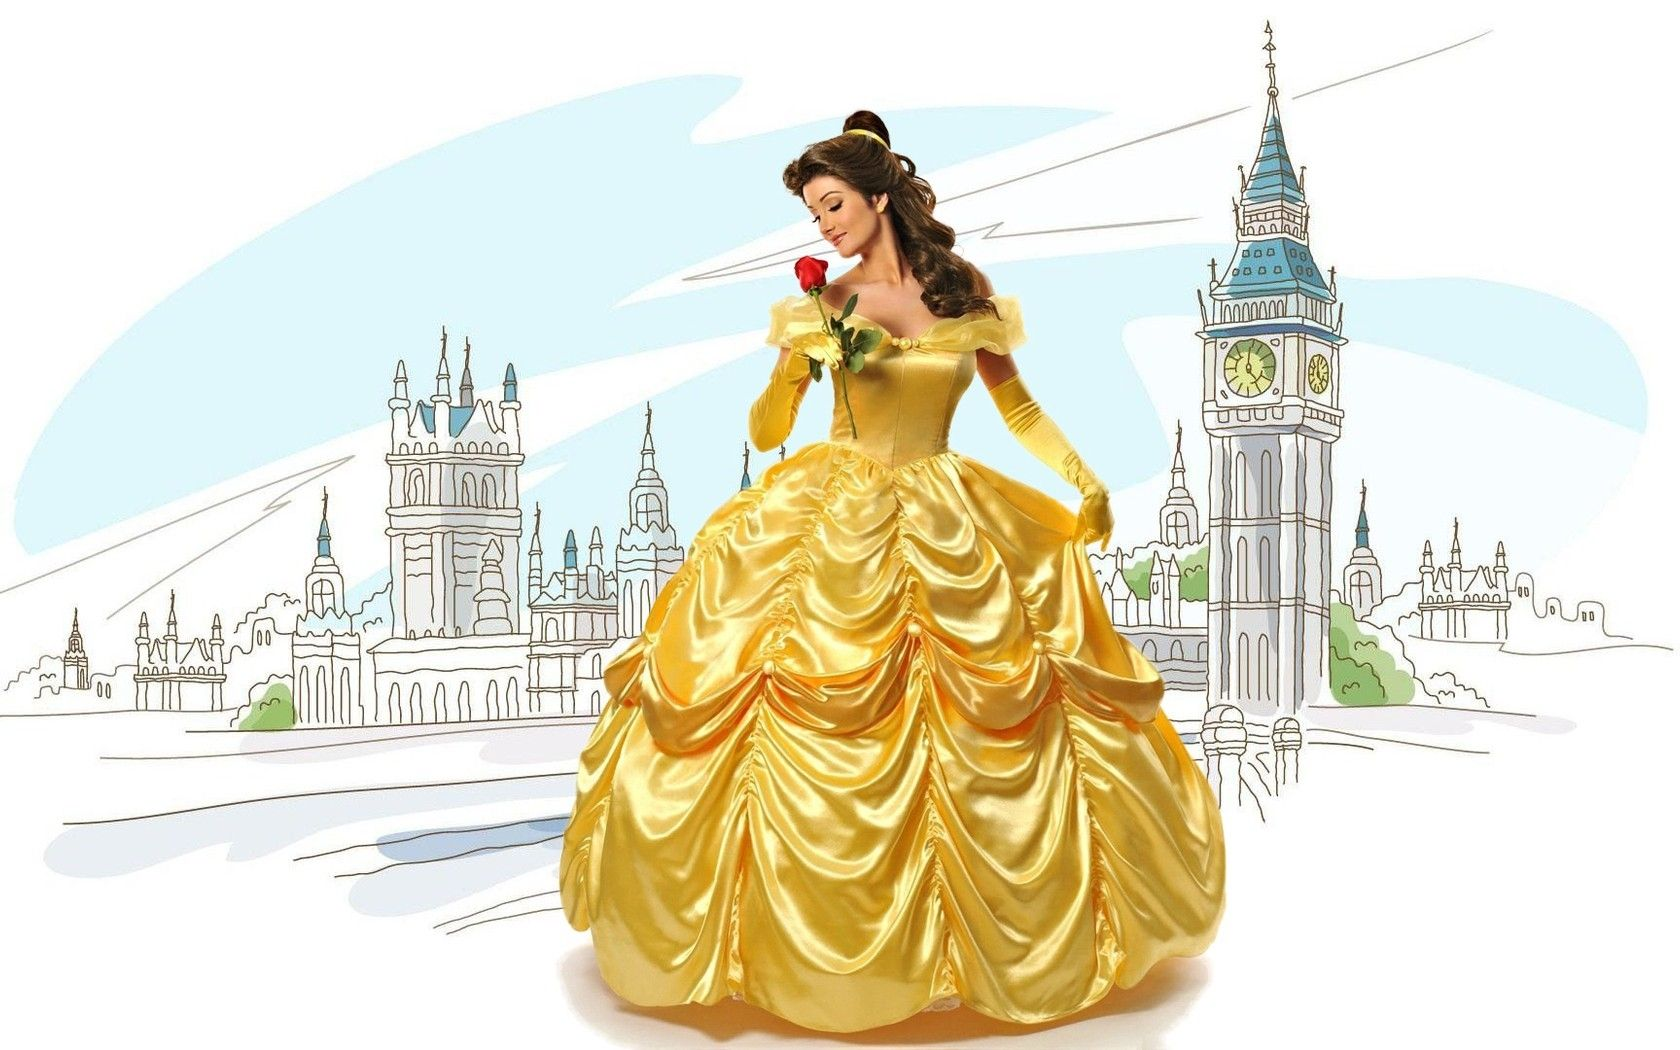 Belle at her quinceanera disney love pinterest belle belle at her quinceanera thecheapjerseys Choice Image